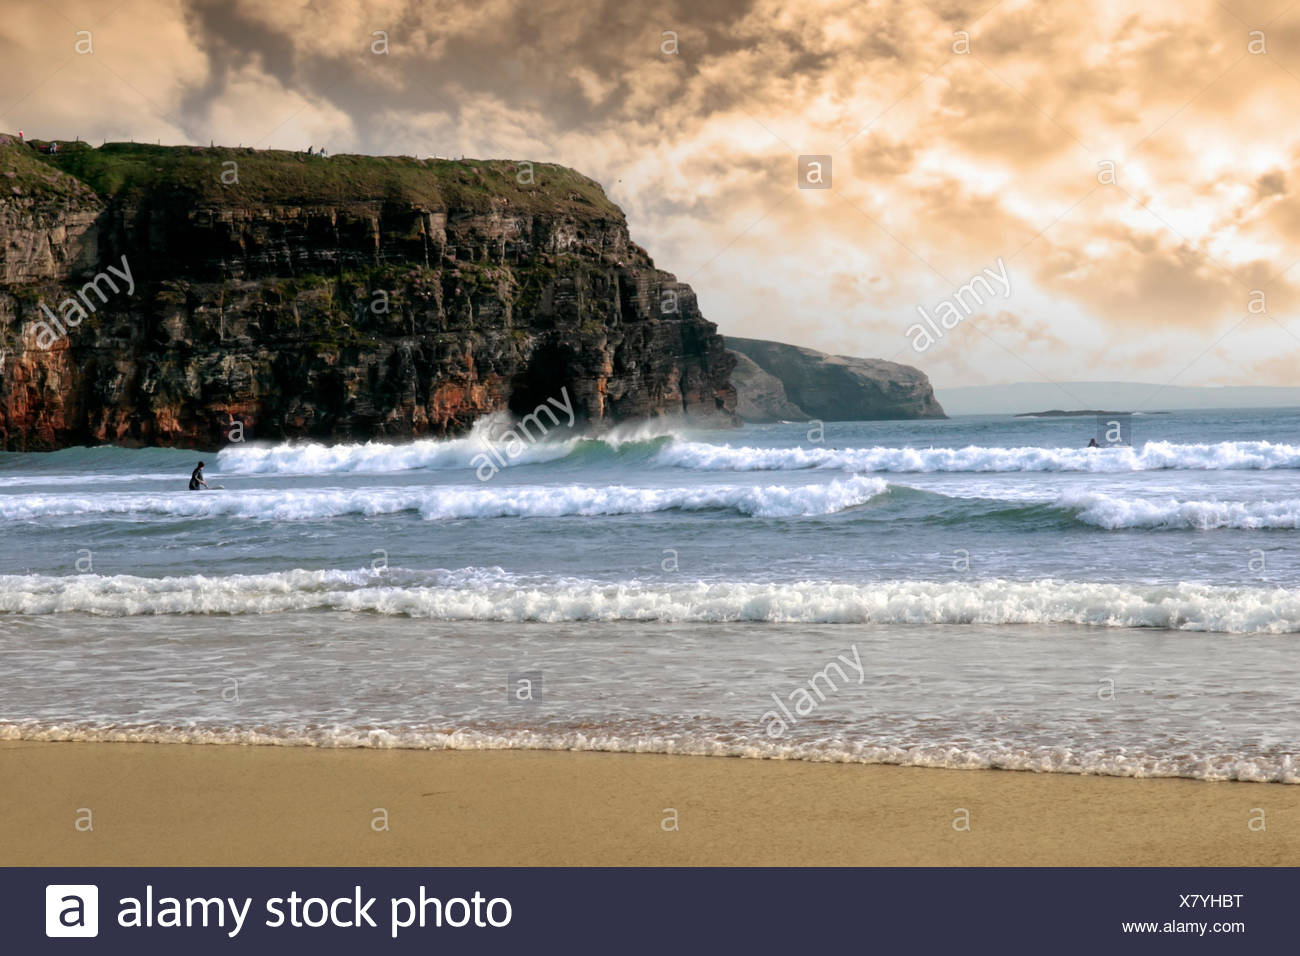 beautiful clean atlantic ocean with surfers catching the waves with cliffs in background on Irelands coast - Stock Image